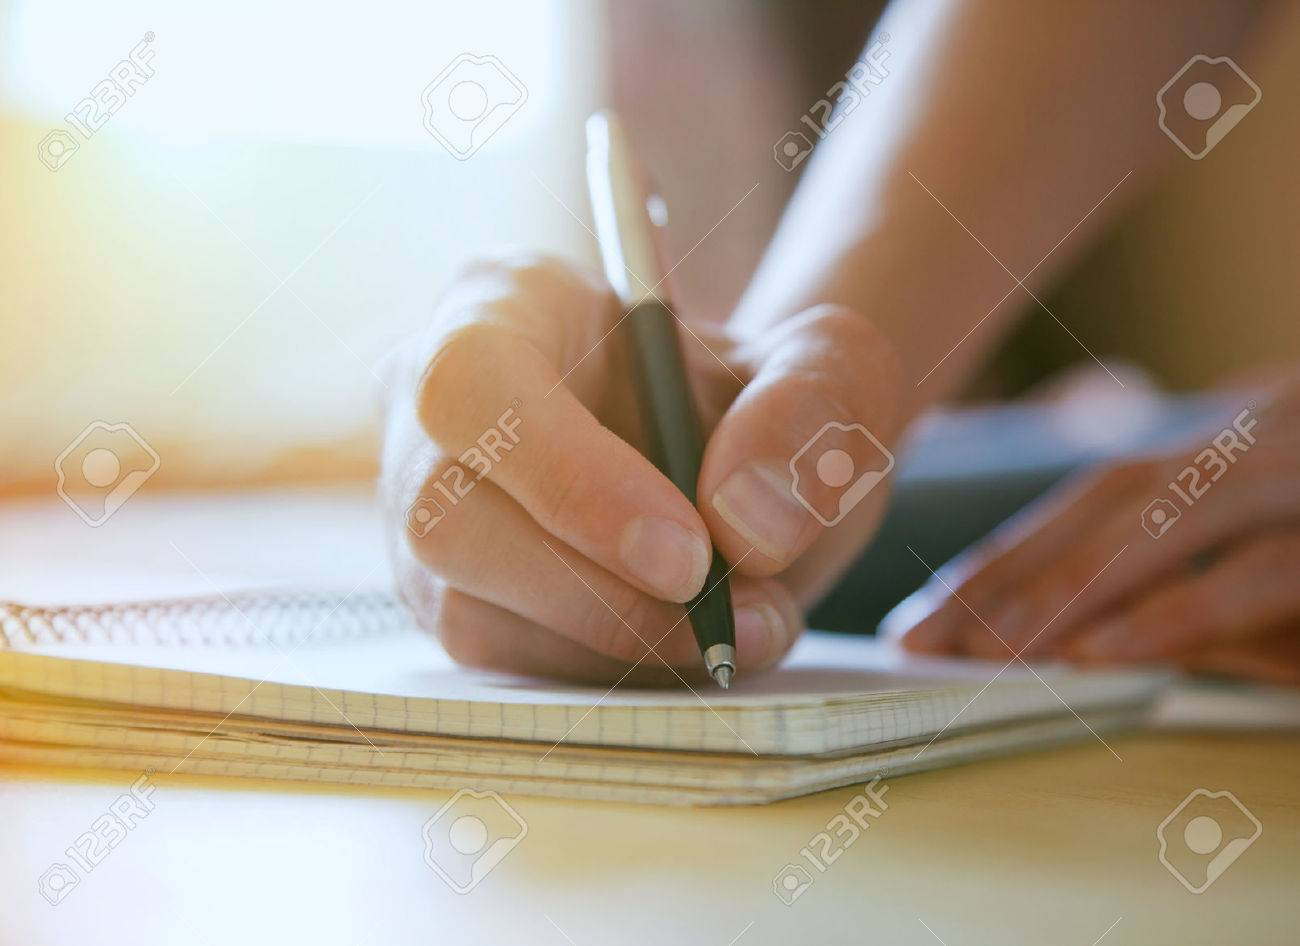 female hands with pen writing on notebook Stock Photo - 46650599